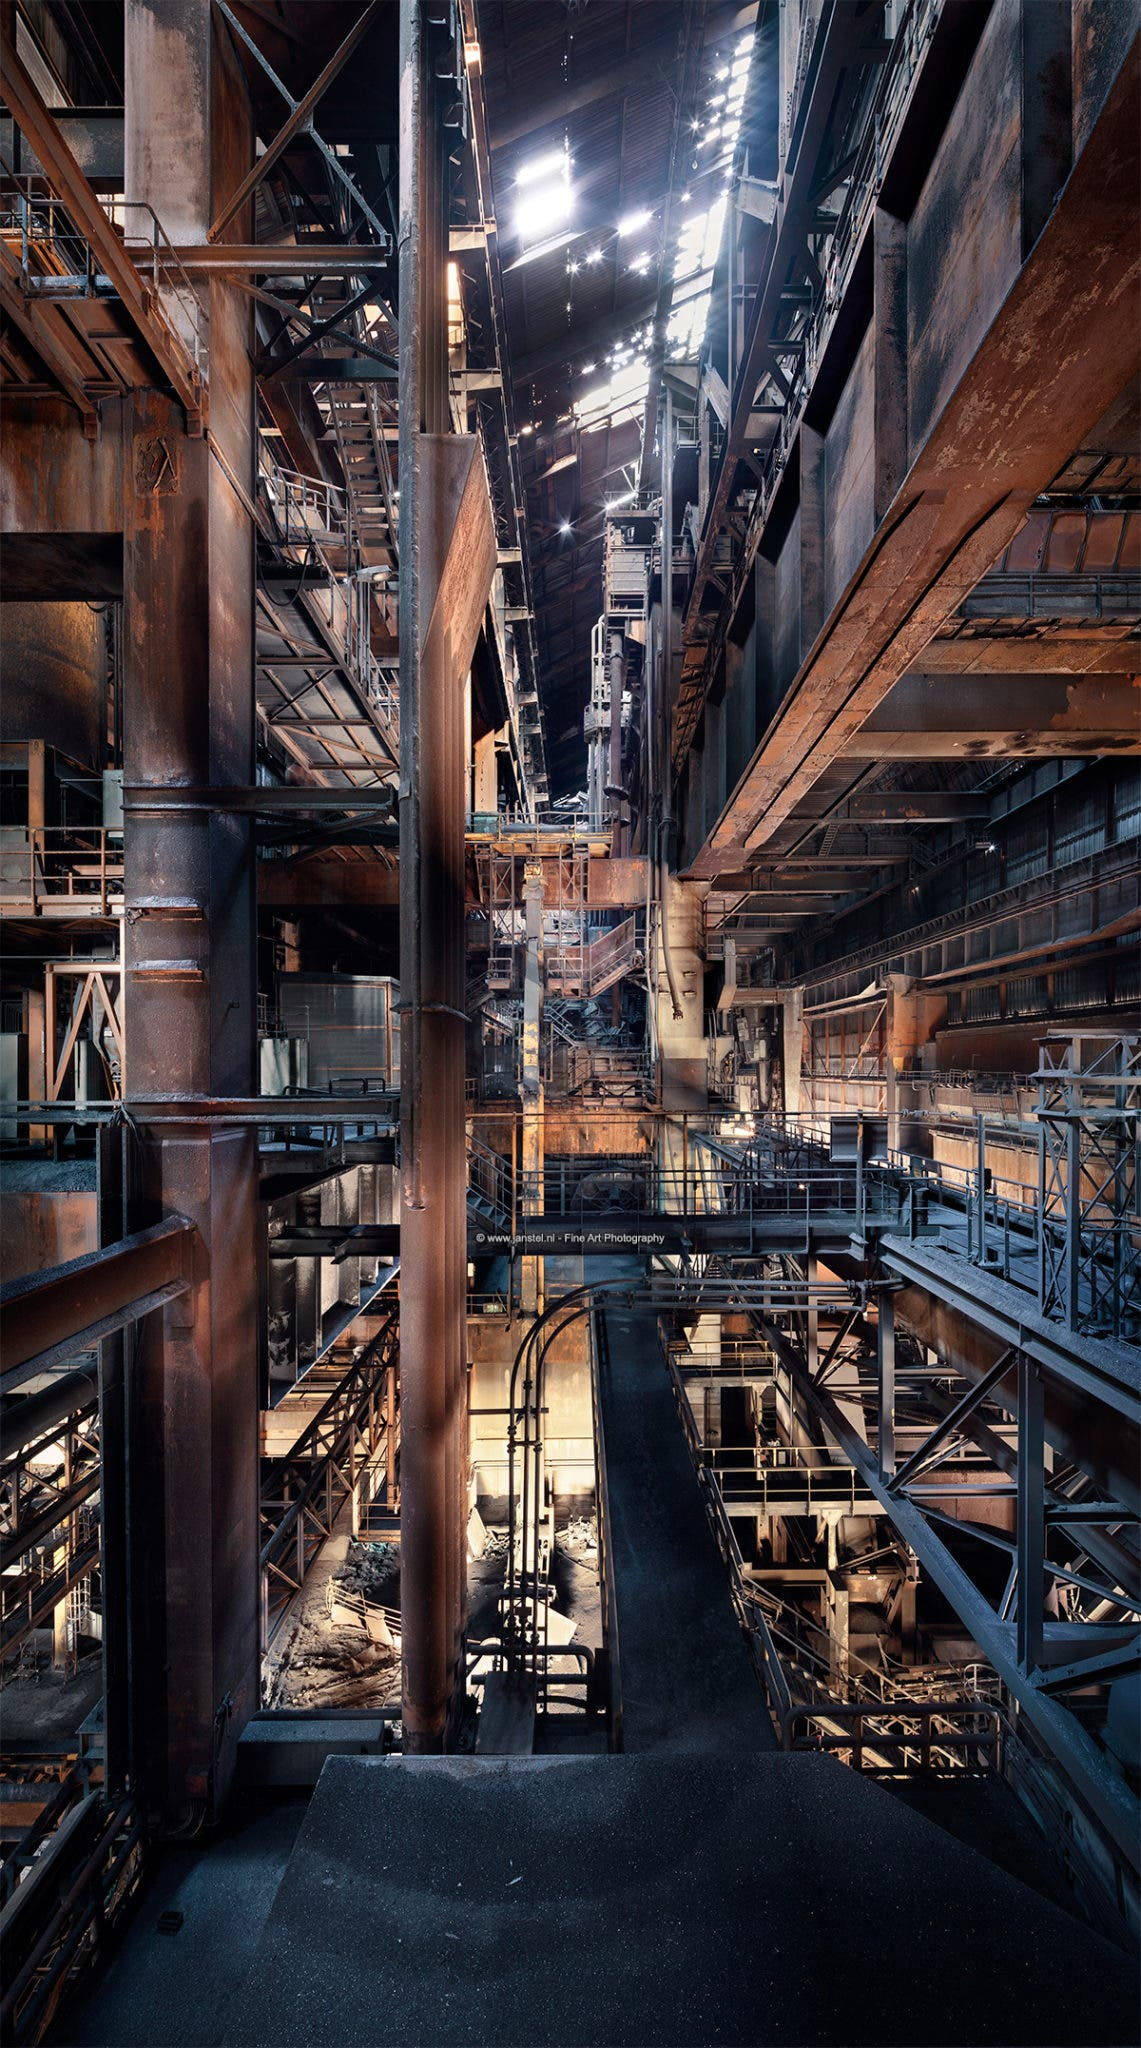 Abandoned & Forgotten: A 15-Year Urban Exploration Photo Project